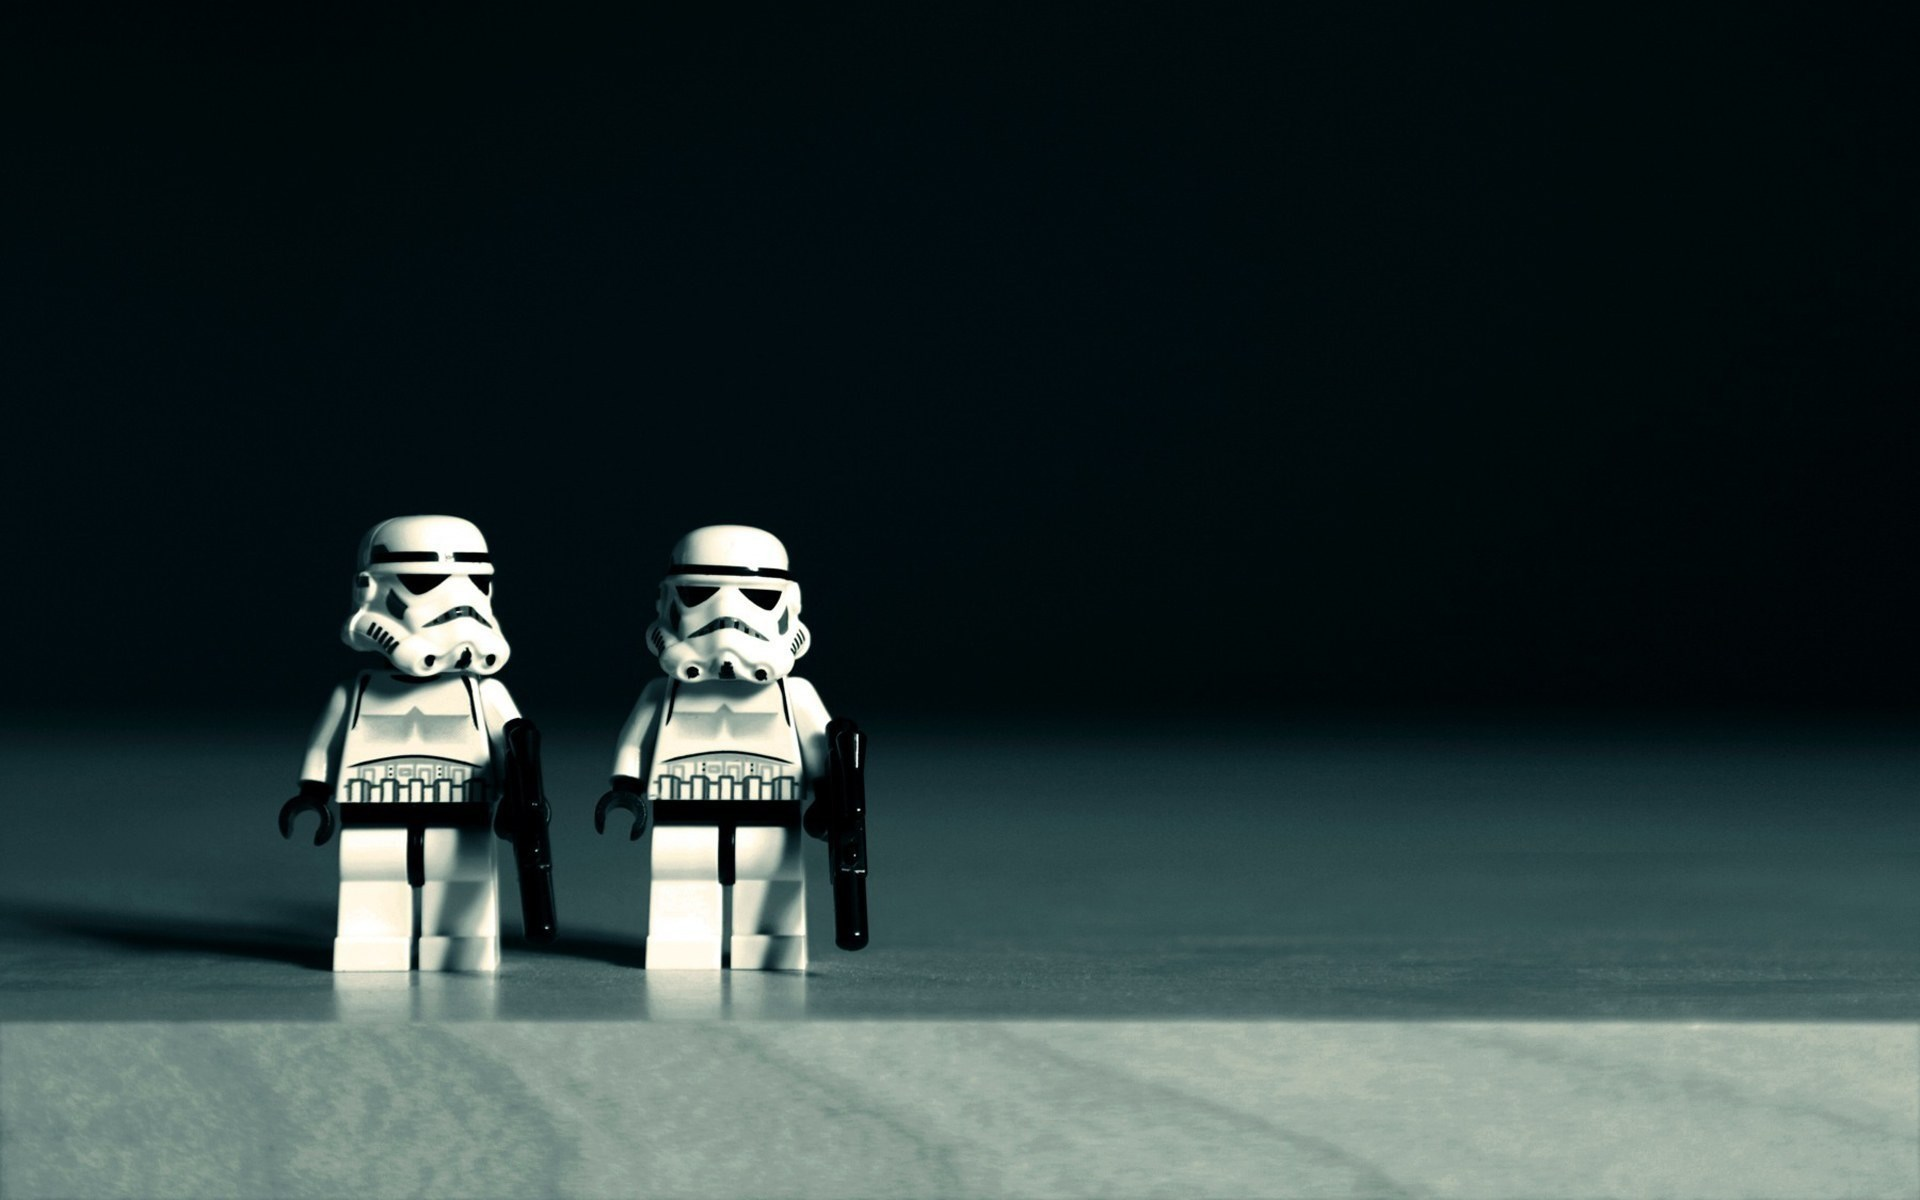 image star wars stormtroopers toys macro lego hd. Black Bedroom Furniture Sets. Home Design Ideas